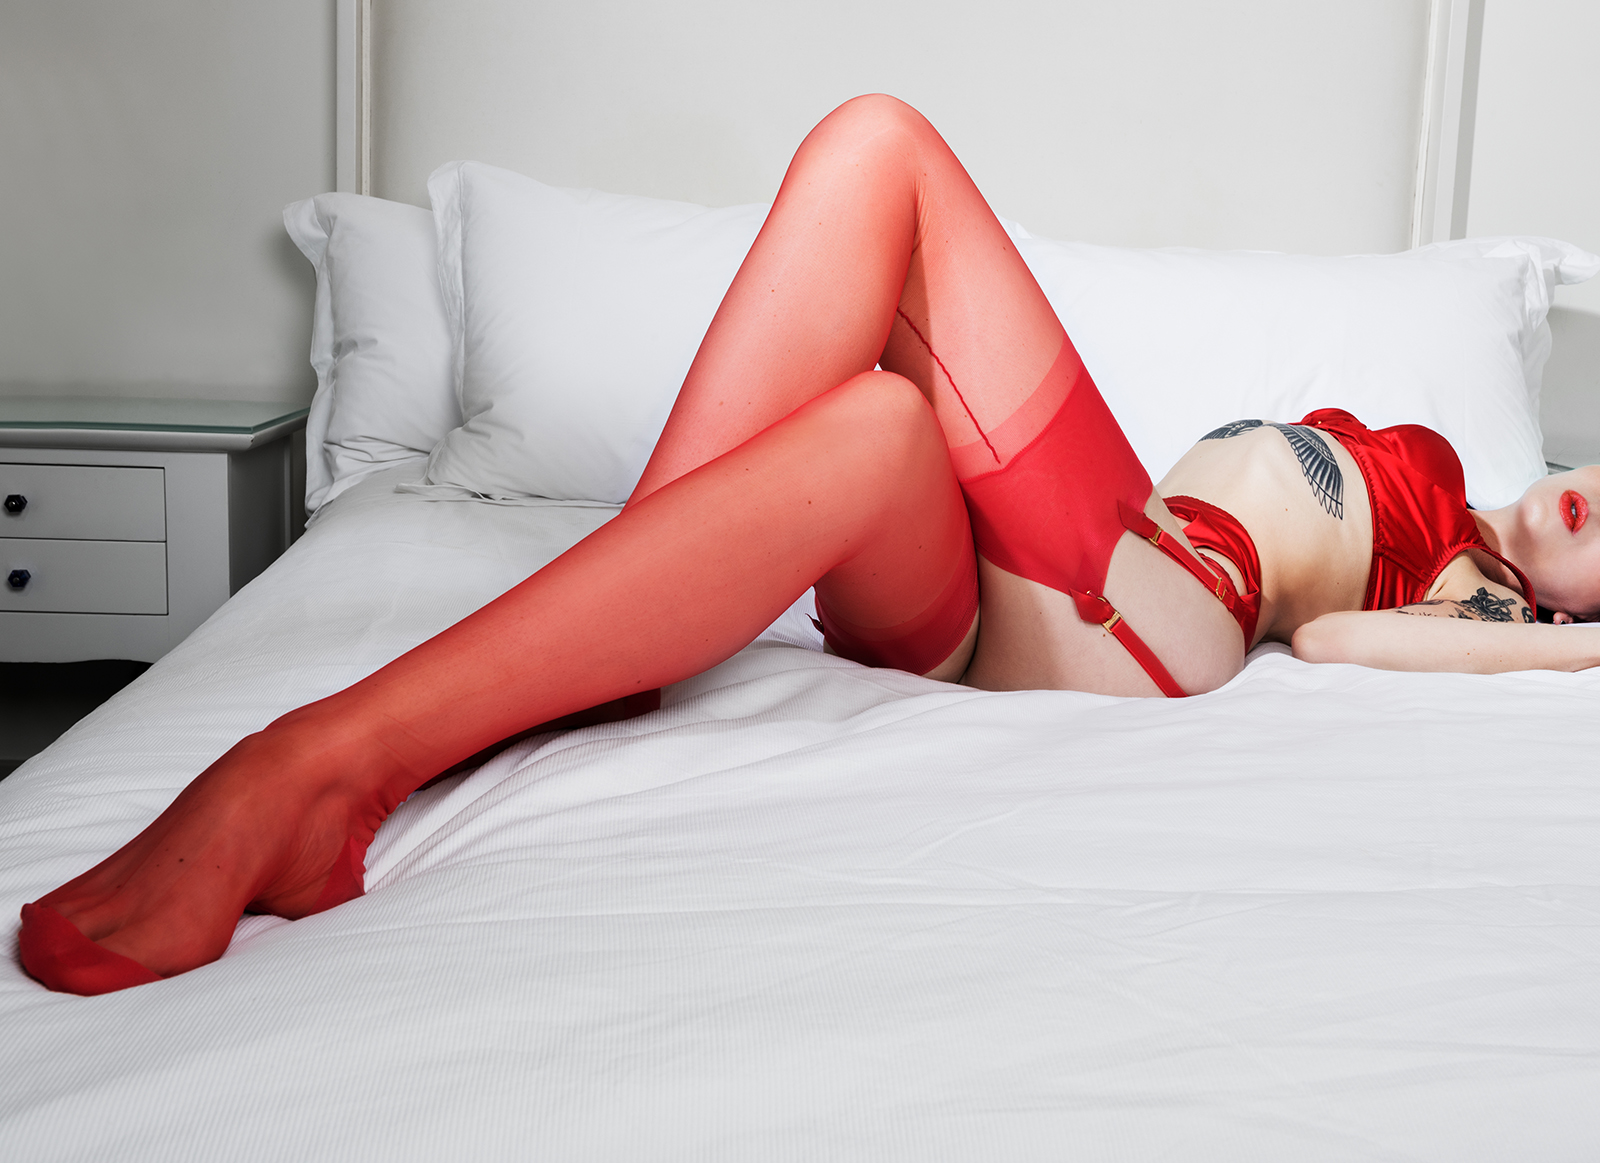 Mistress_Ramona_Ryder_SF_Mistress_Escort_Dominatrix_stocking_garter_long_leg_fetish_worship_feet_foot.jpg